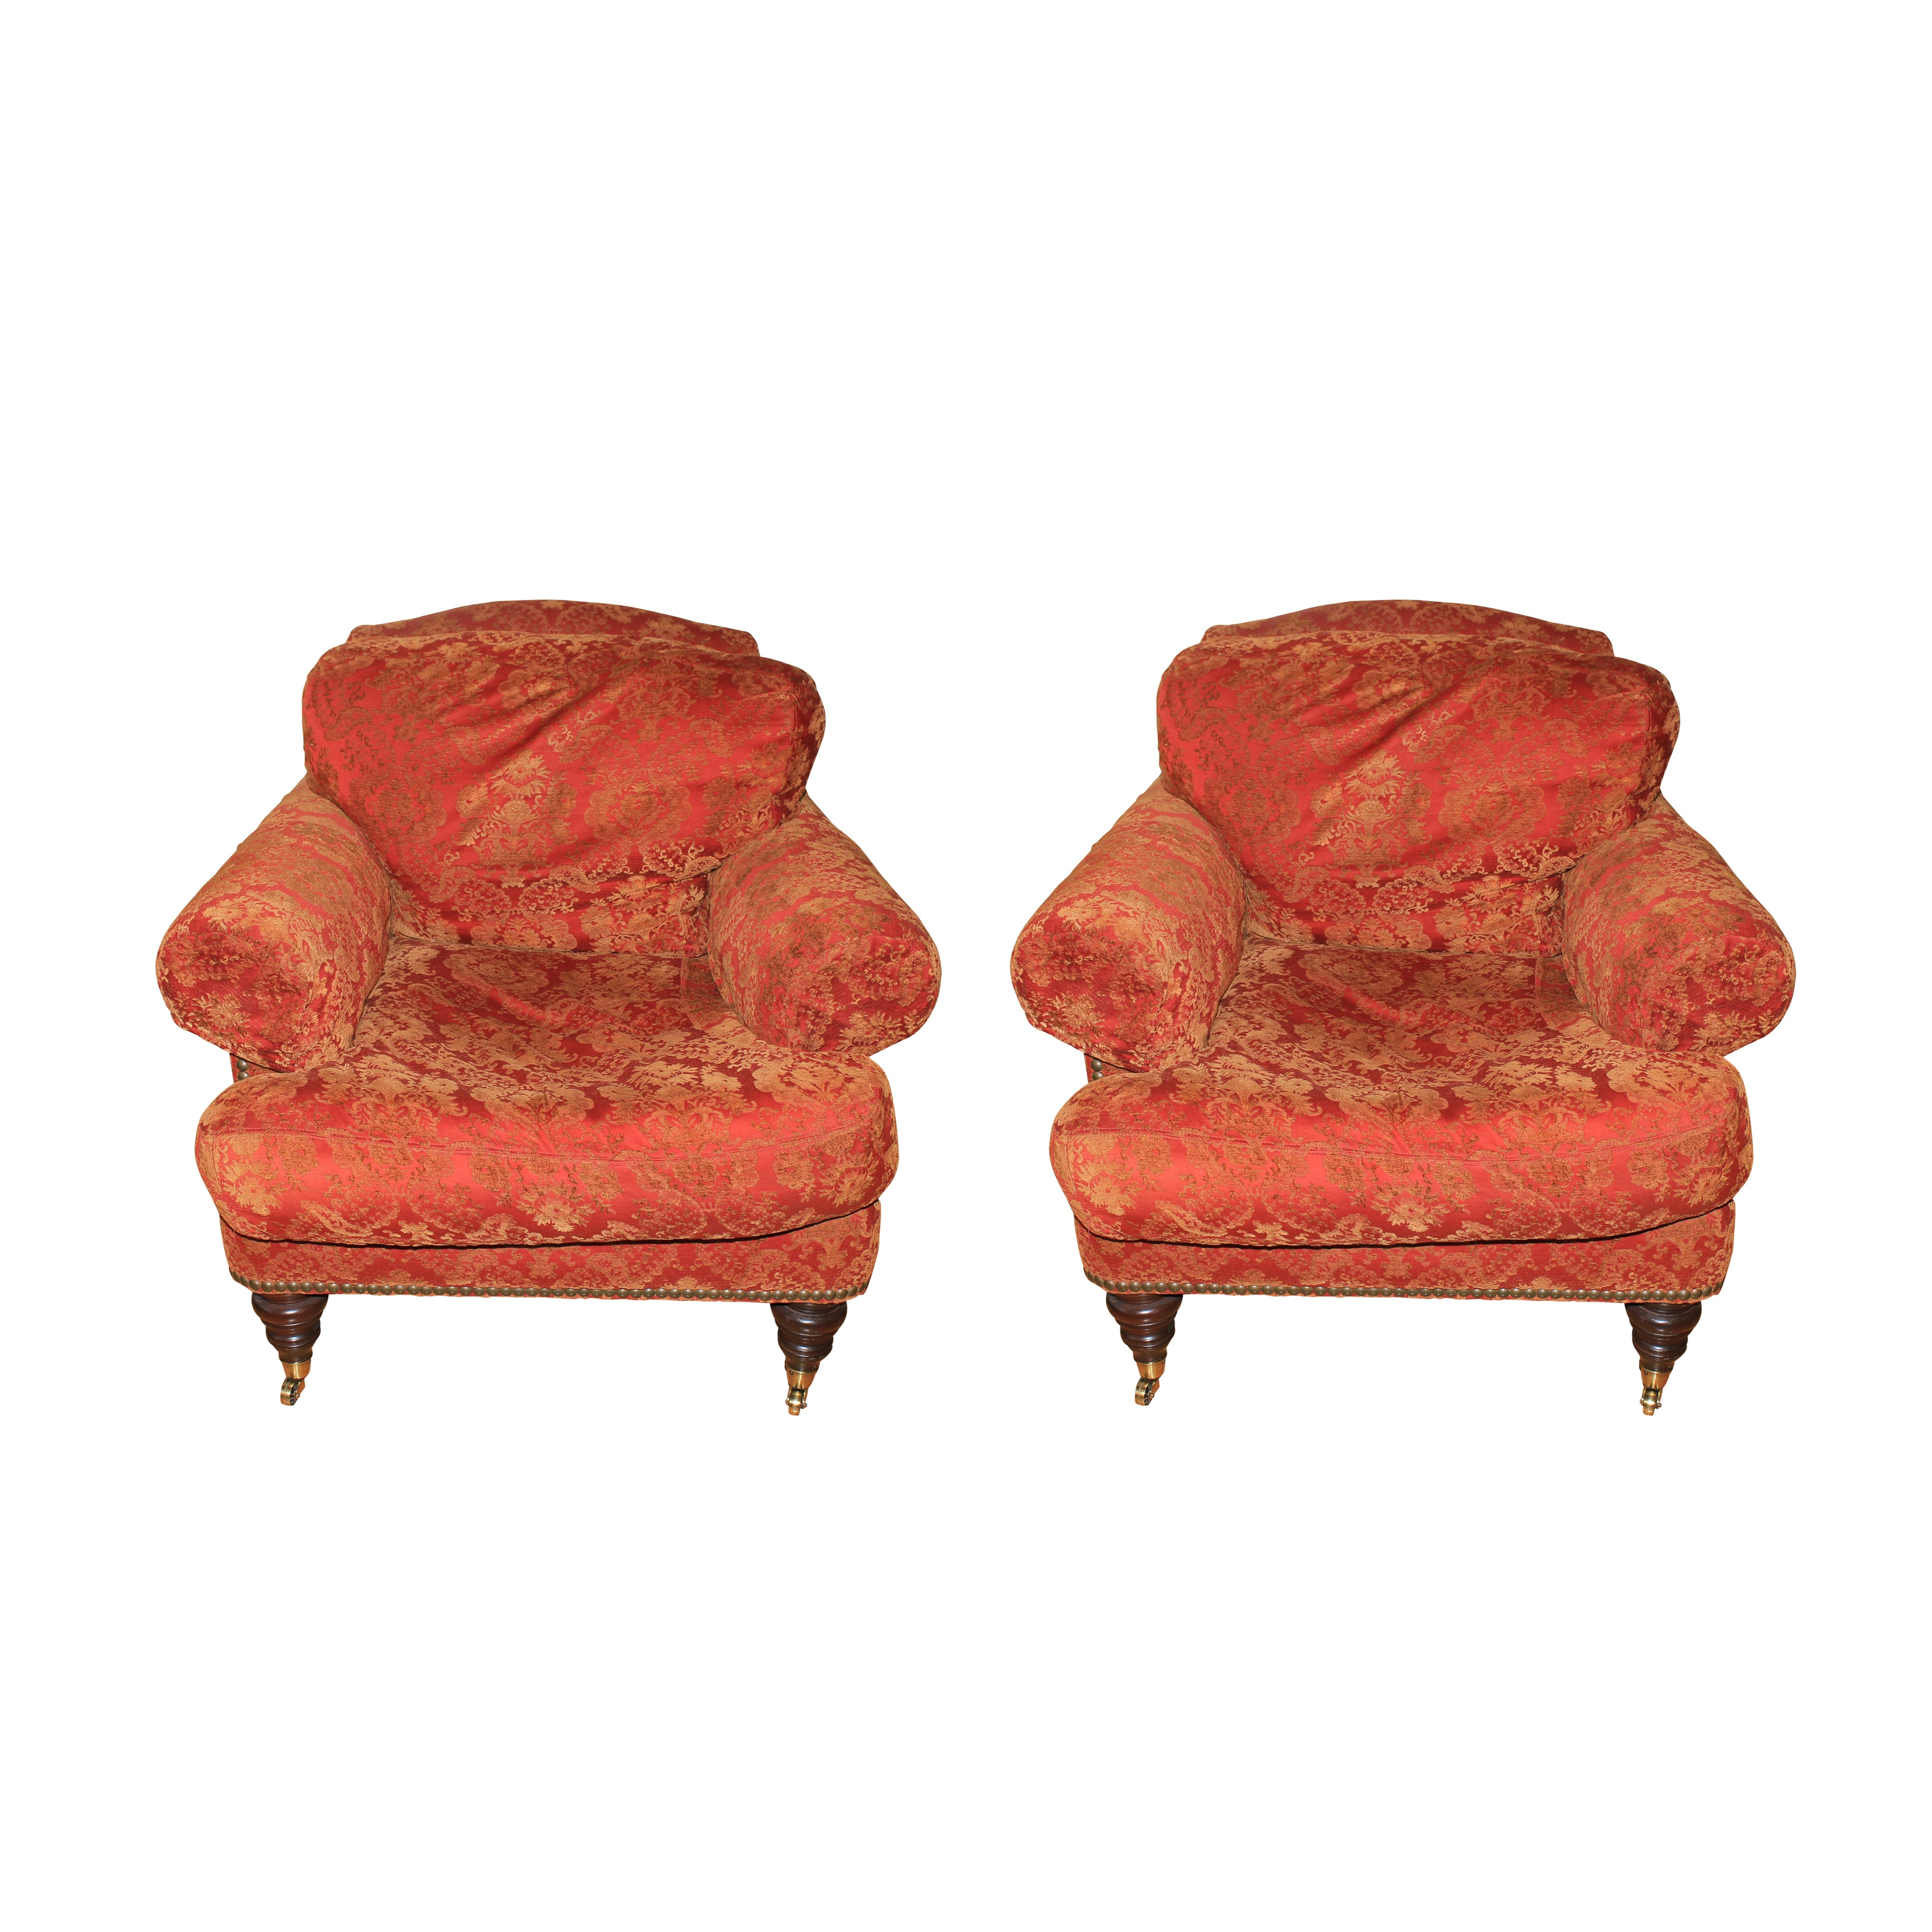 Pair of Upholstered Armchairs by Lillian August